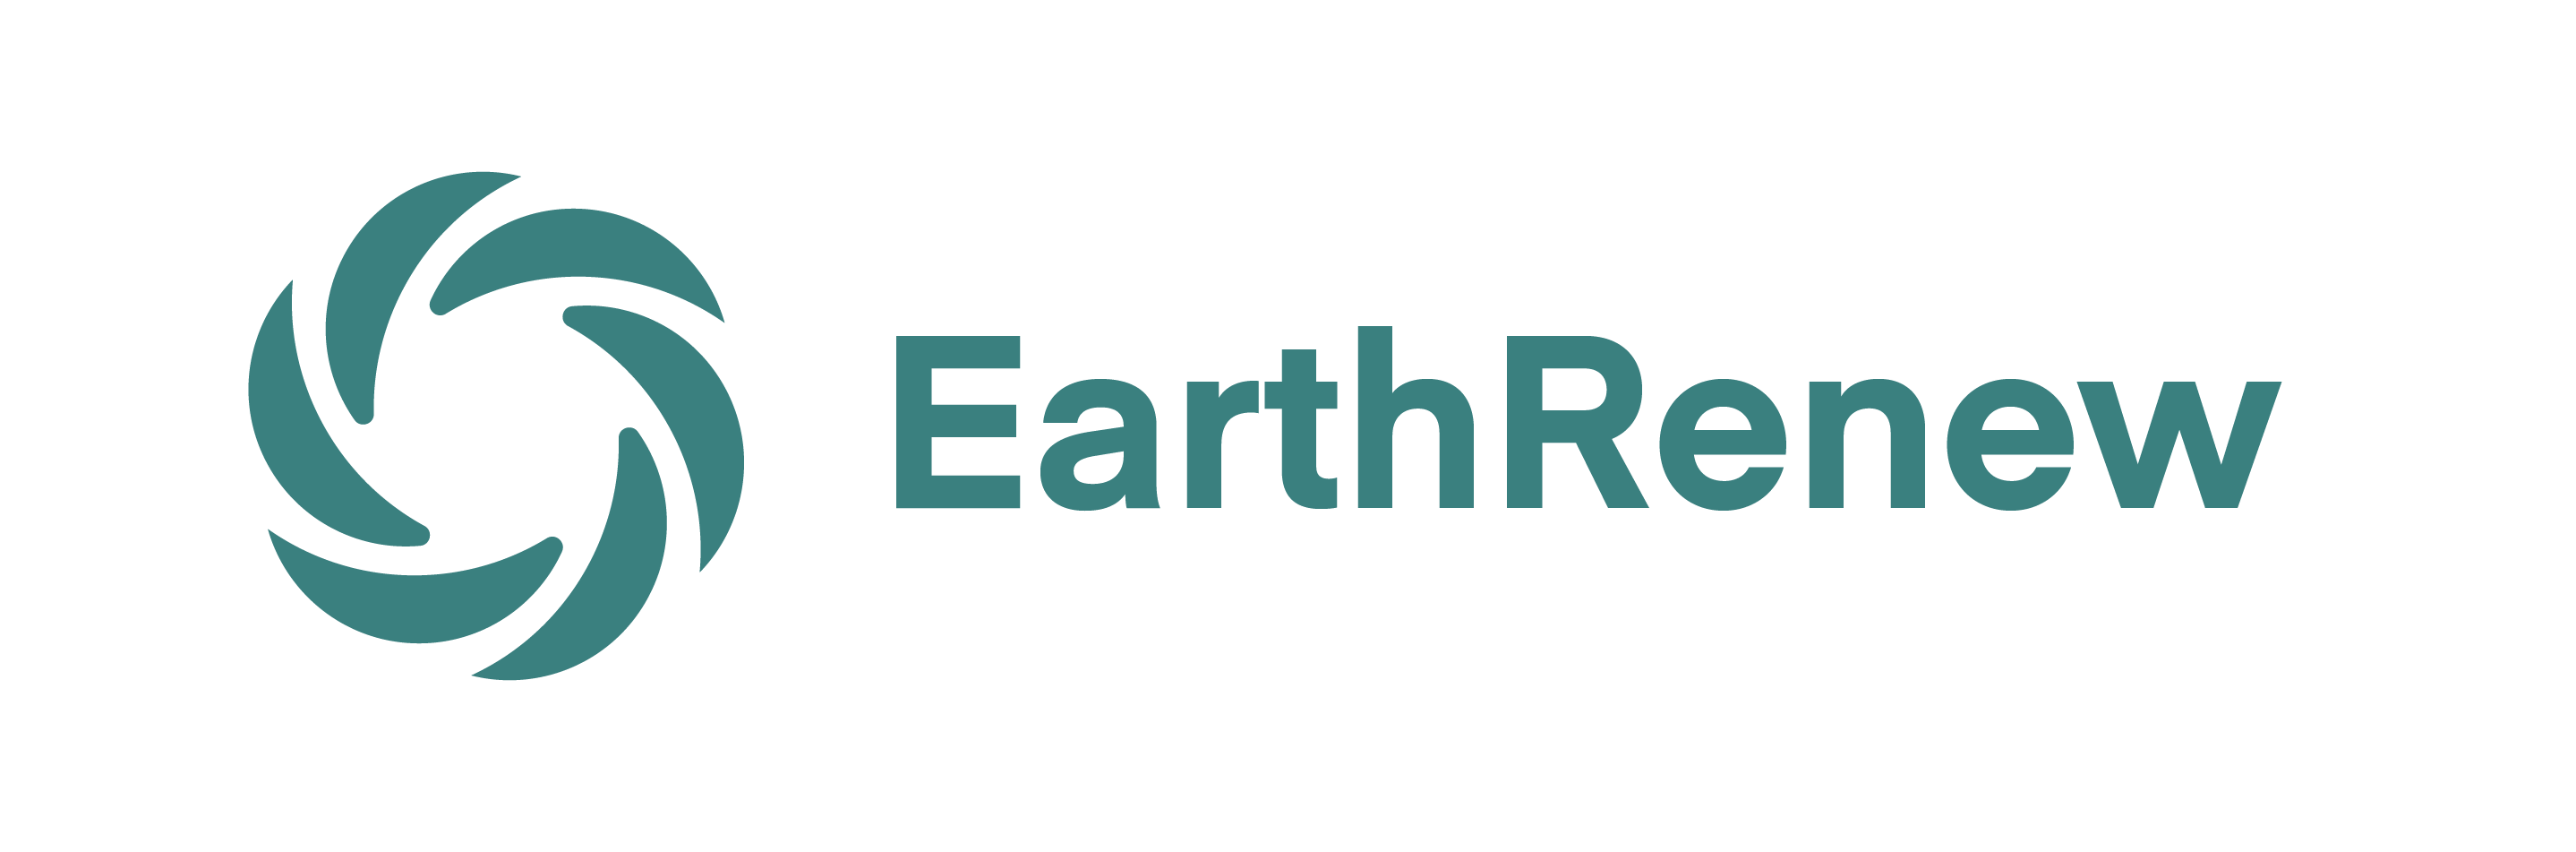 EarthRenew Sells 1,500 MWh of Electricity Generated by the Strathmore Facility in 2020